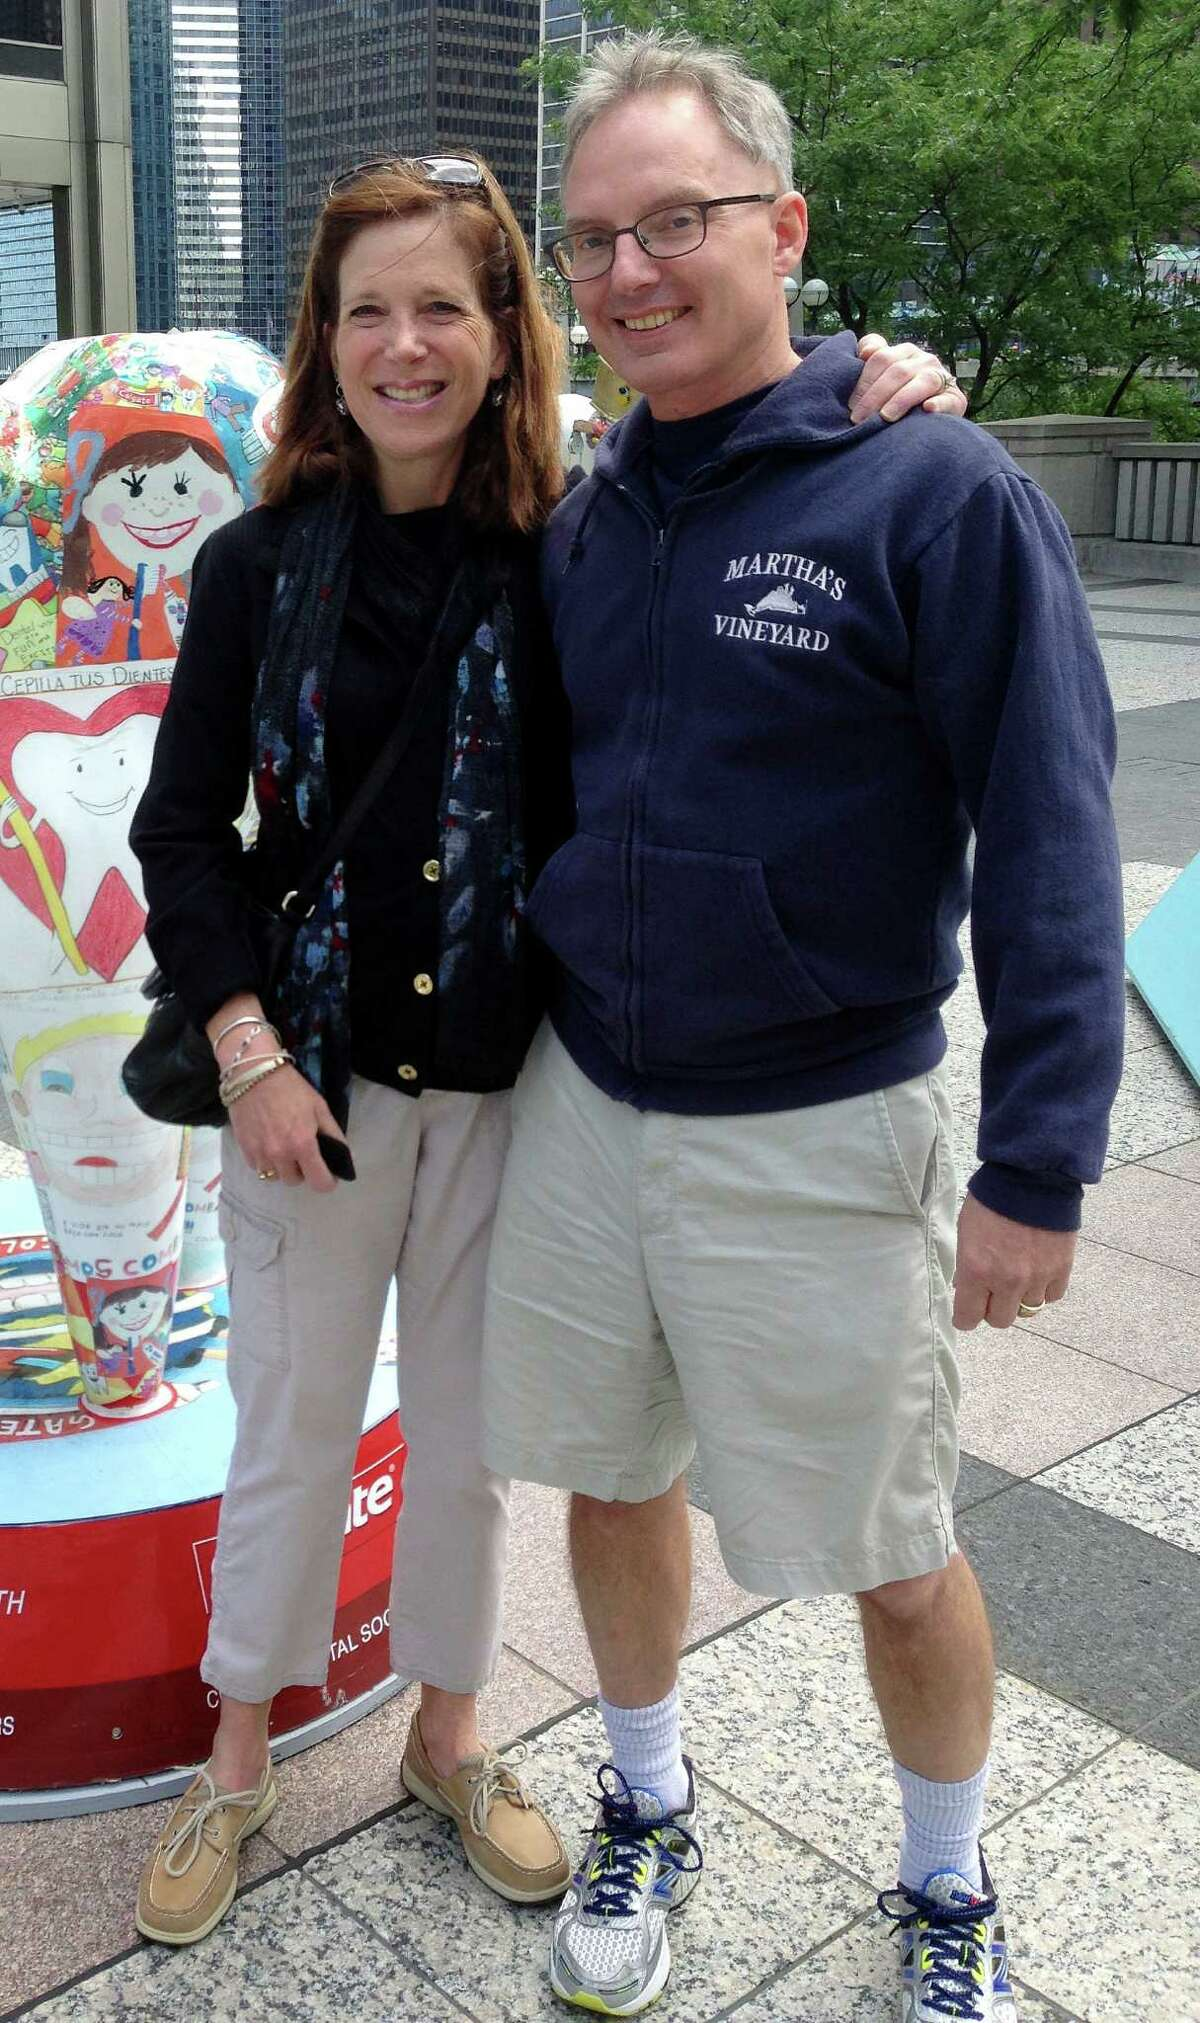 In this July 2014 photo provided by Karen Friend, Friend, left, stands with her husband, Jacob Vinton, on Michigan Avenue in Chicago. Friend, a professor at Brown University in Providence, R.I., took four weeks off in 2014 after her 59-year-old husband, who has early-onset Alzheimer?'s disease, was hospitalized with tremors. She used the time to make sure he was medically stable and hire help. (Courtesy of Karen Friend via AP) ORG XMIT: BX301